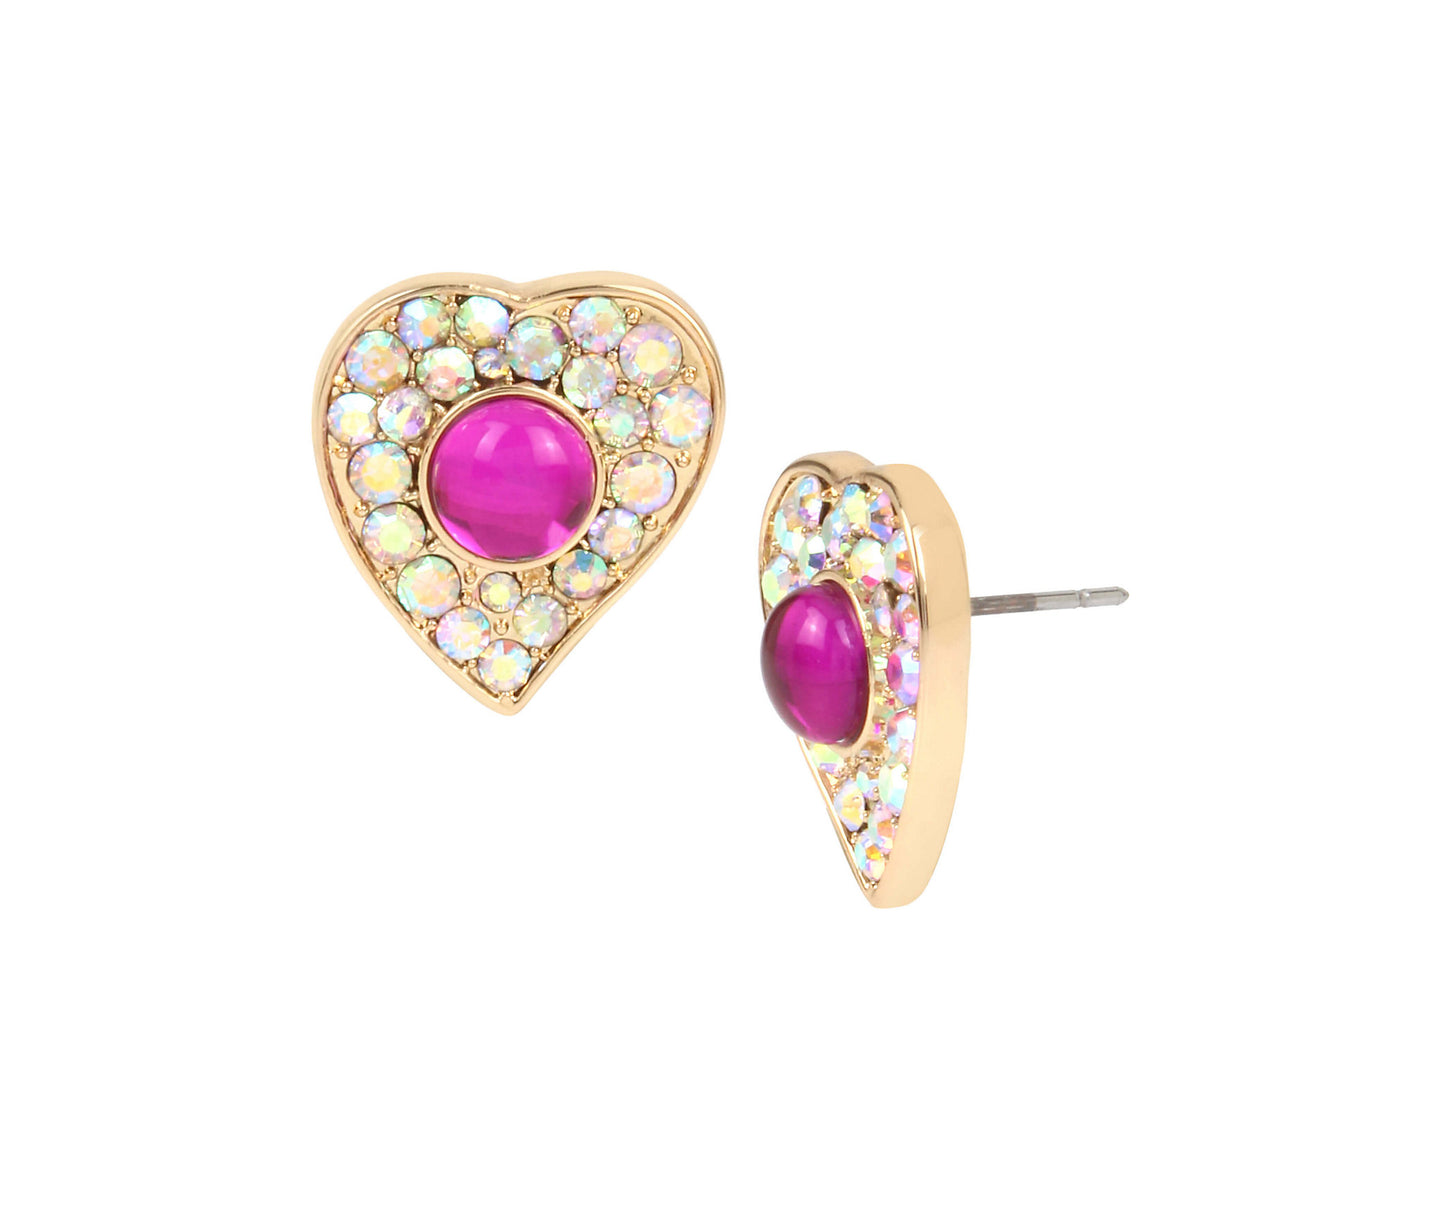 BREAKING HEARTS STUD EARRINGS PINK - JEWELRY - Betsey Johnson